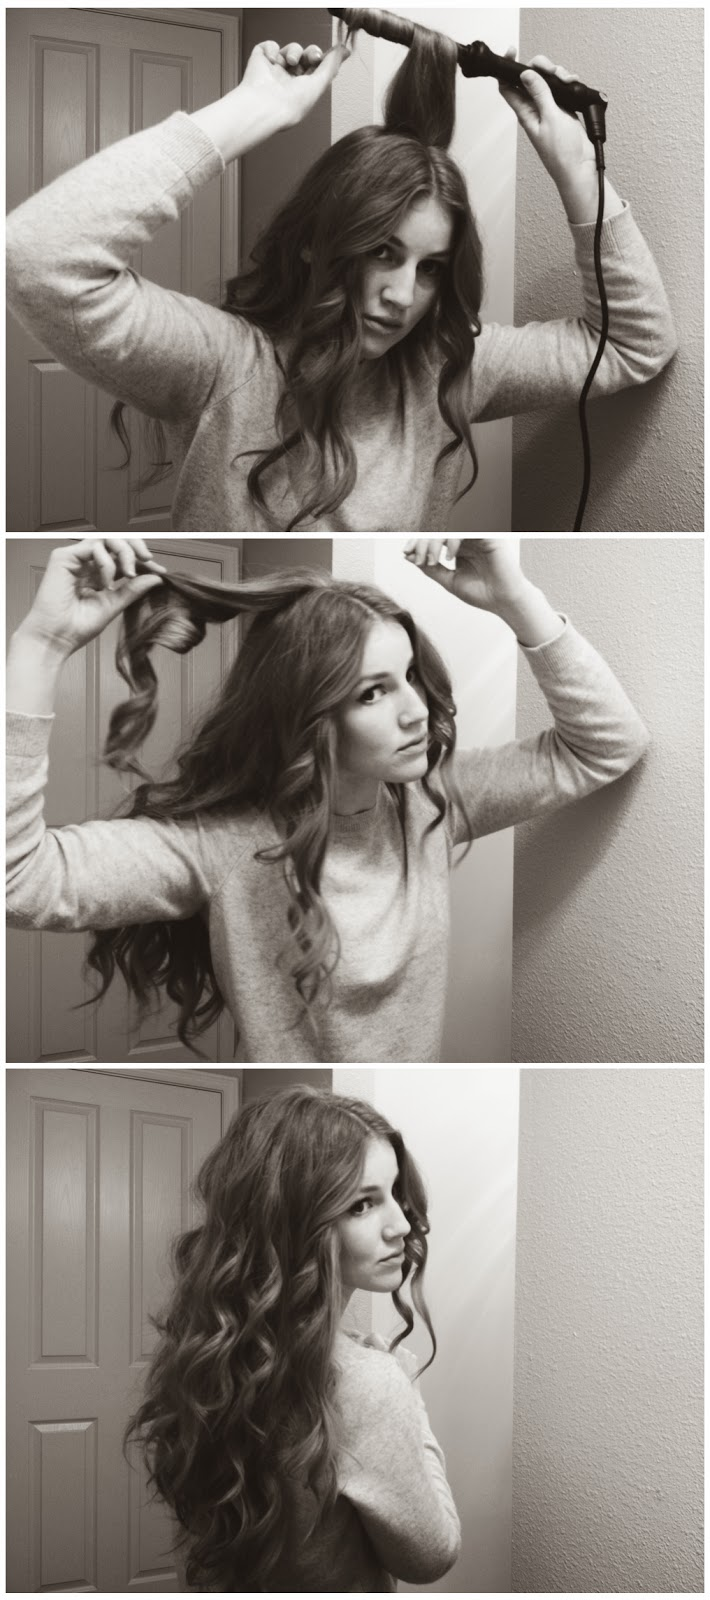 teased section of hair, wrapping the hair down around the curling wand